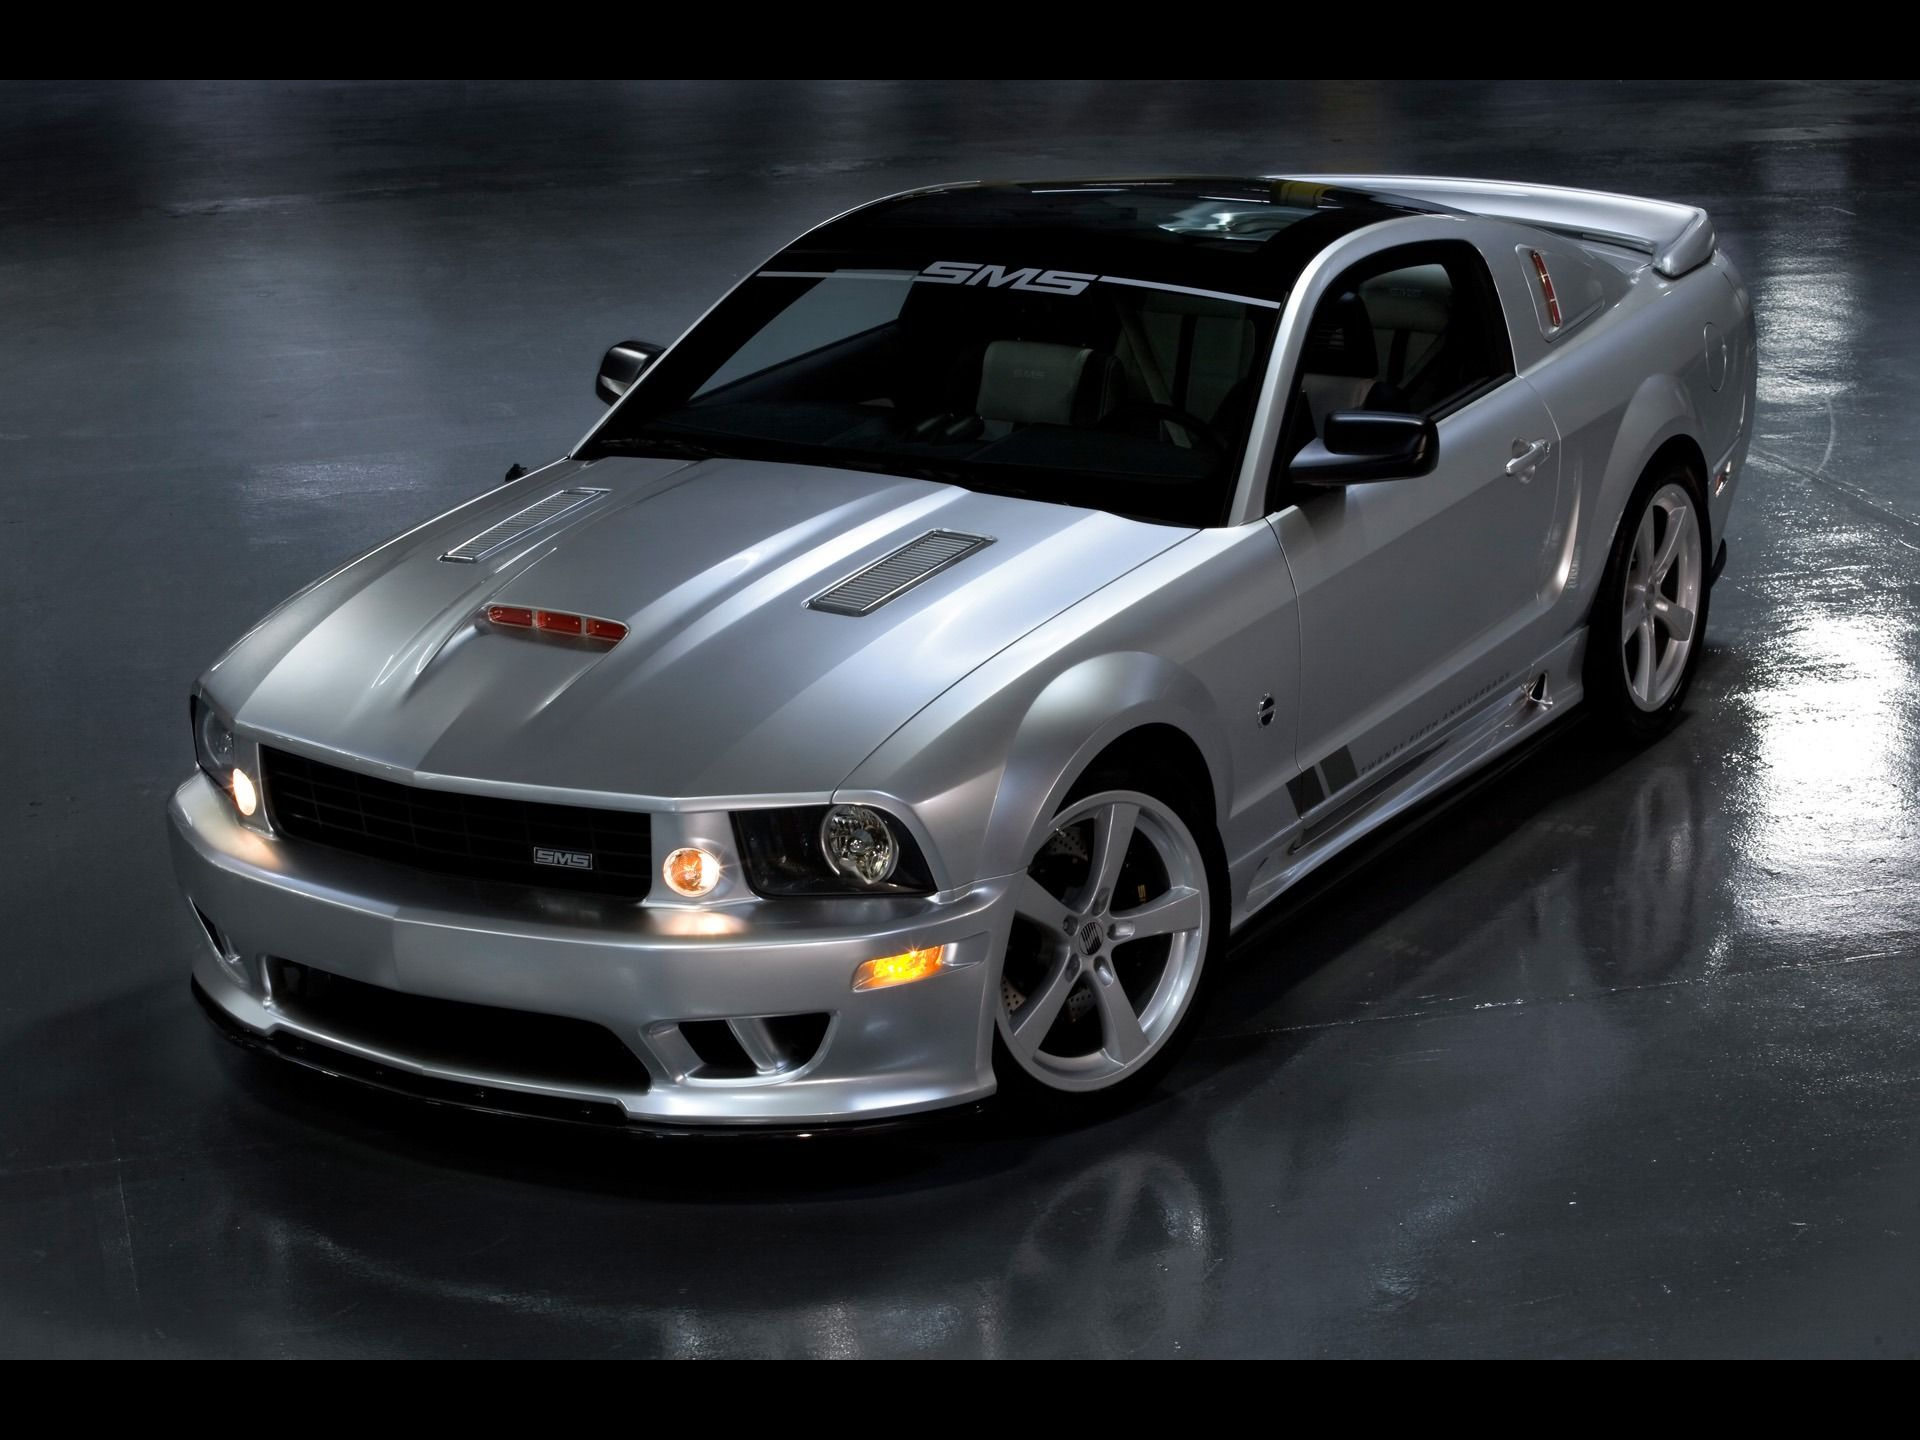 Car Wallpaper Ford Mustang Wallpapers For Free Download About Saleen Mustang Ford Mustang Saleen 2009 Ford Mustang